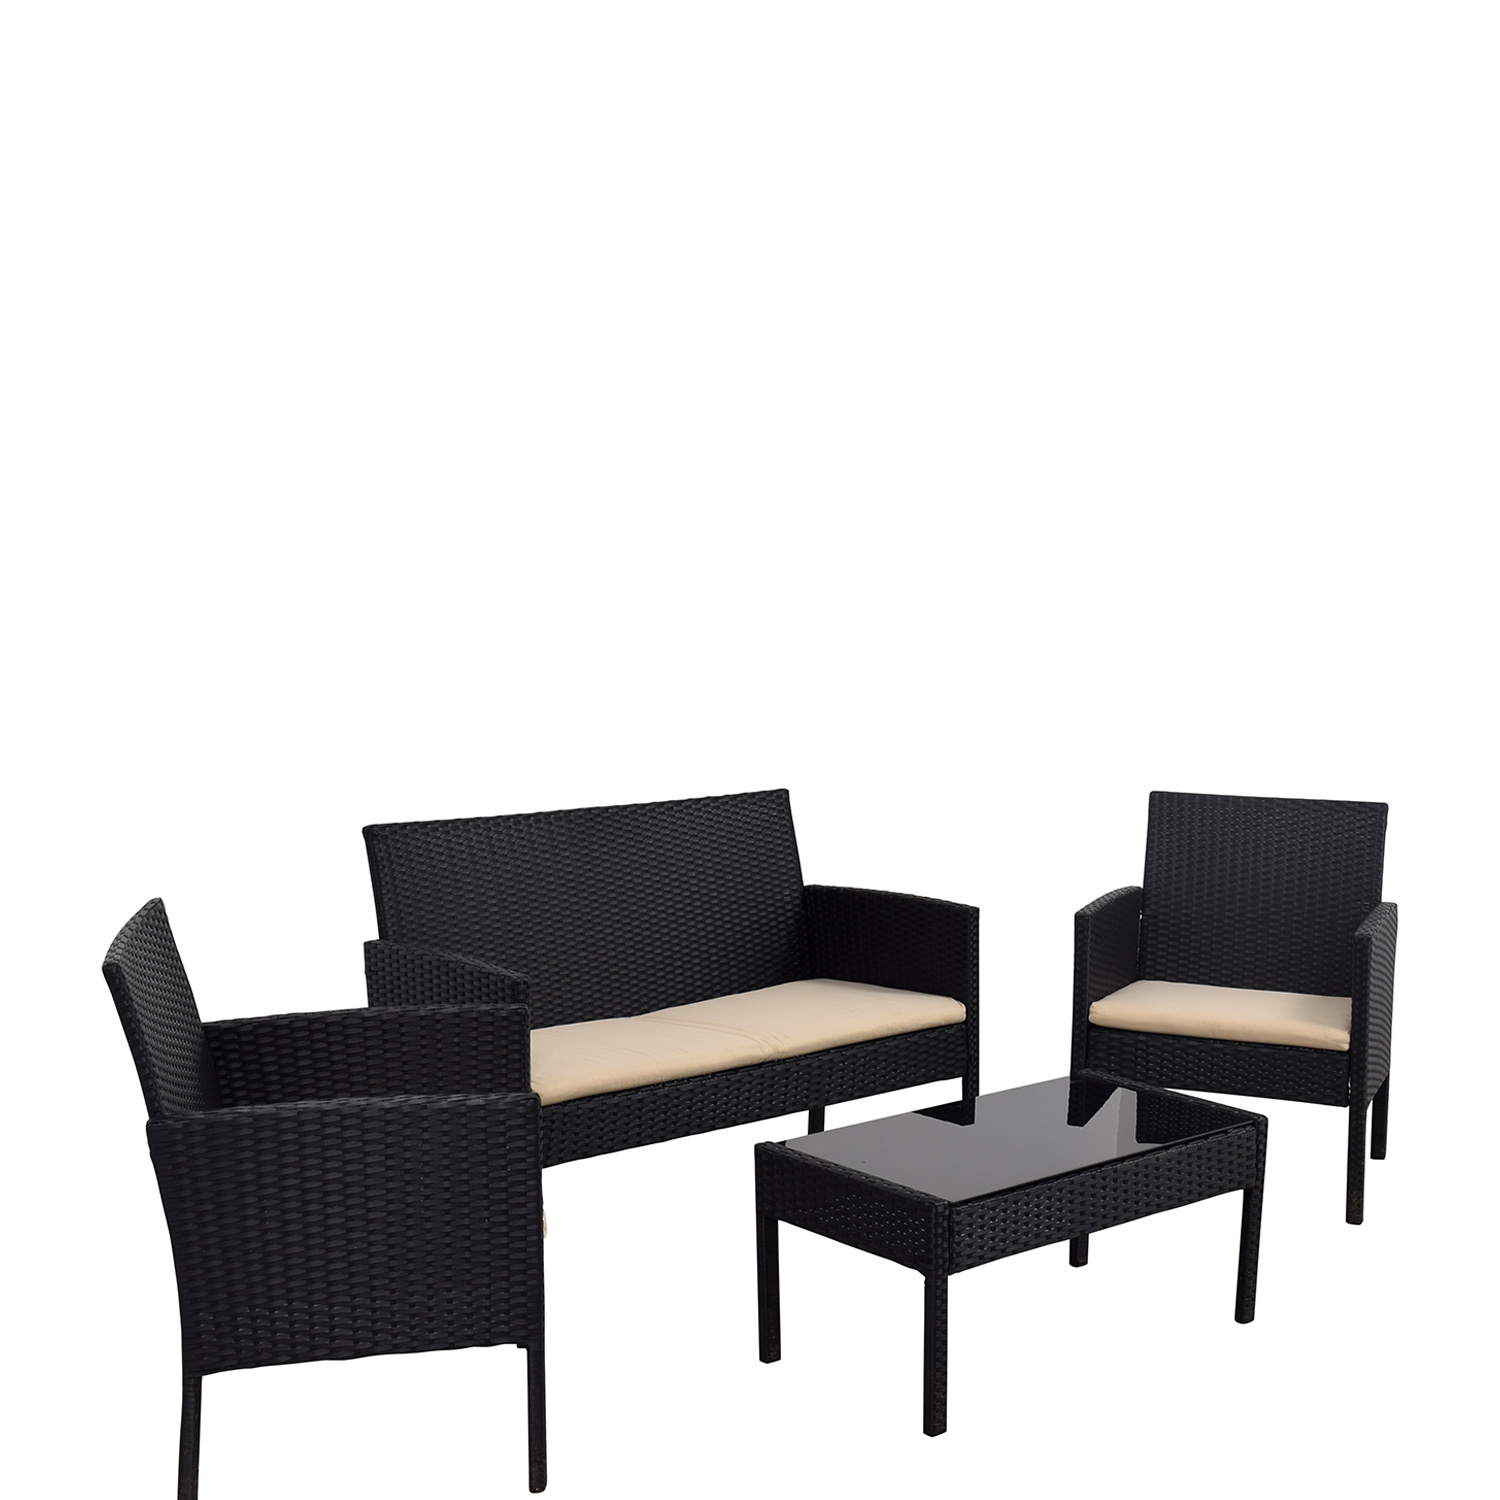 shop Radeway Black Outdoor Garden Patio Furniture Radeway Dining Sets